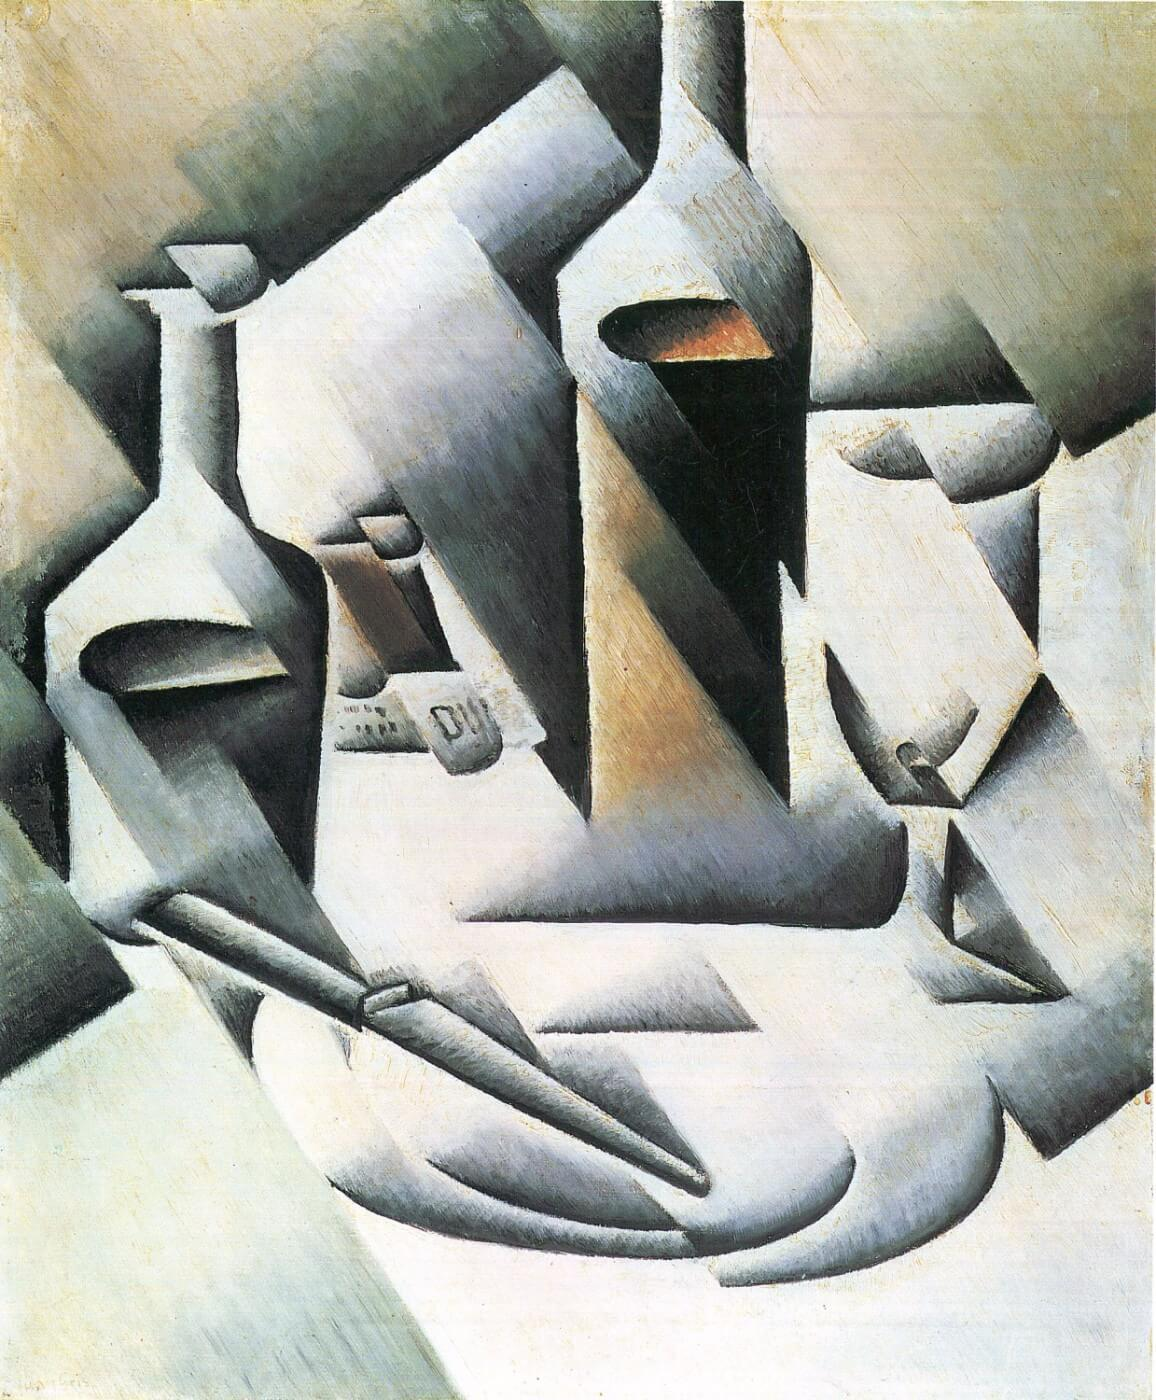 Juan Gris Paintings | Buy Posters, Frames, Canvas, Digital Art & Large Size Prints Of The Famous Modern Master's Artworks